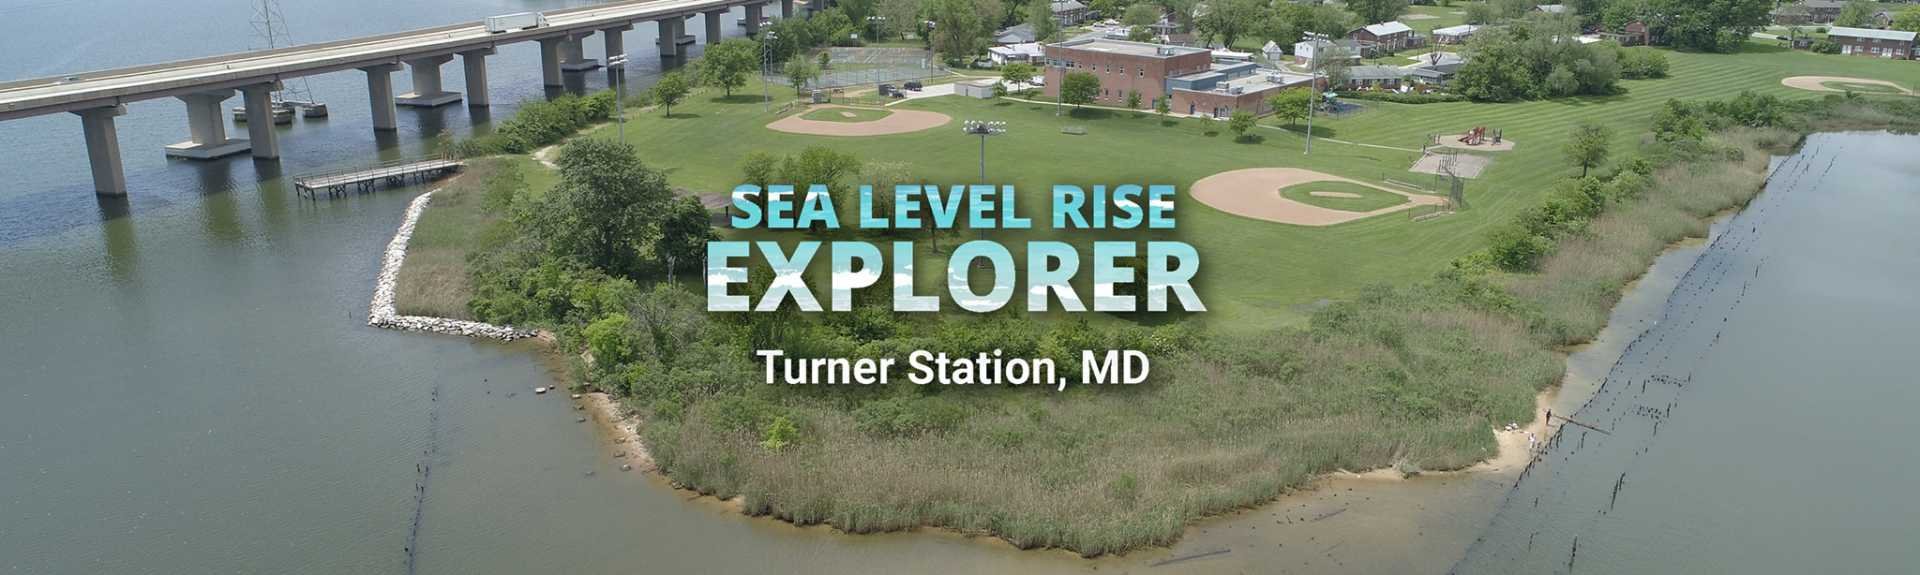 Sea Level Rise Explorer: Turner Station